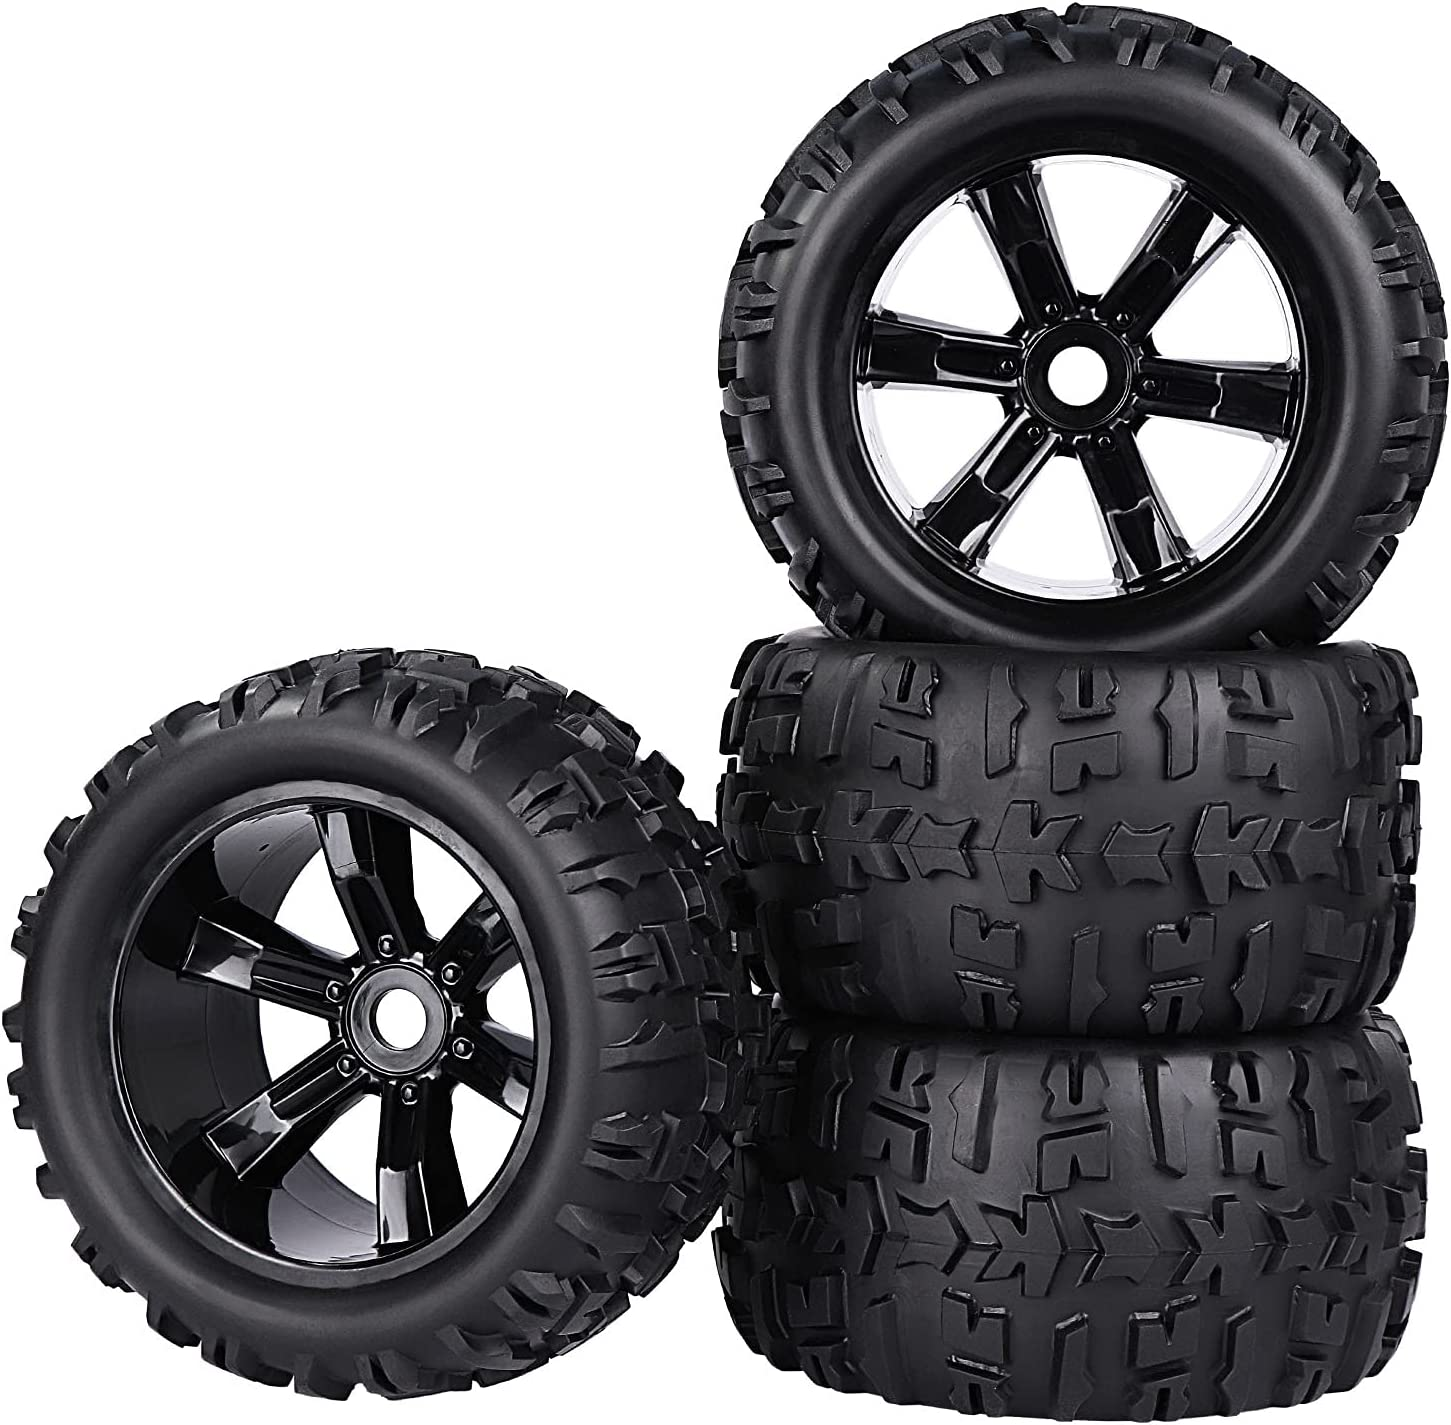 Aimrock Spasm price Our shop OFFers the best service 1 8 Pre-Mounted 17mm Hex a RC Wheels 3.9'' Truck Monster